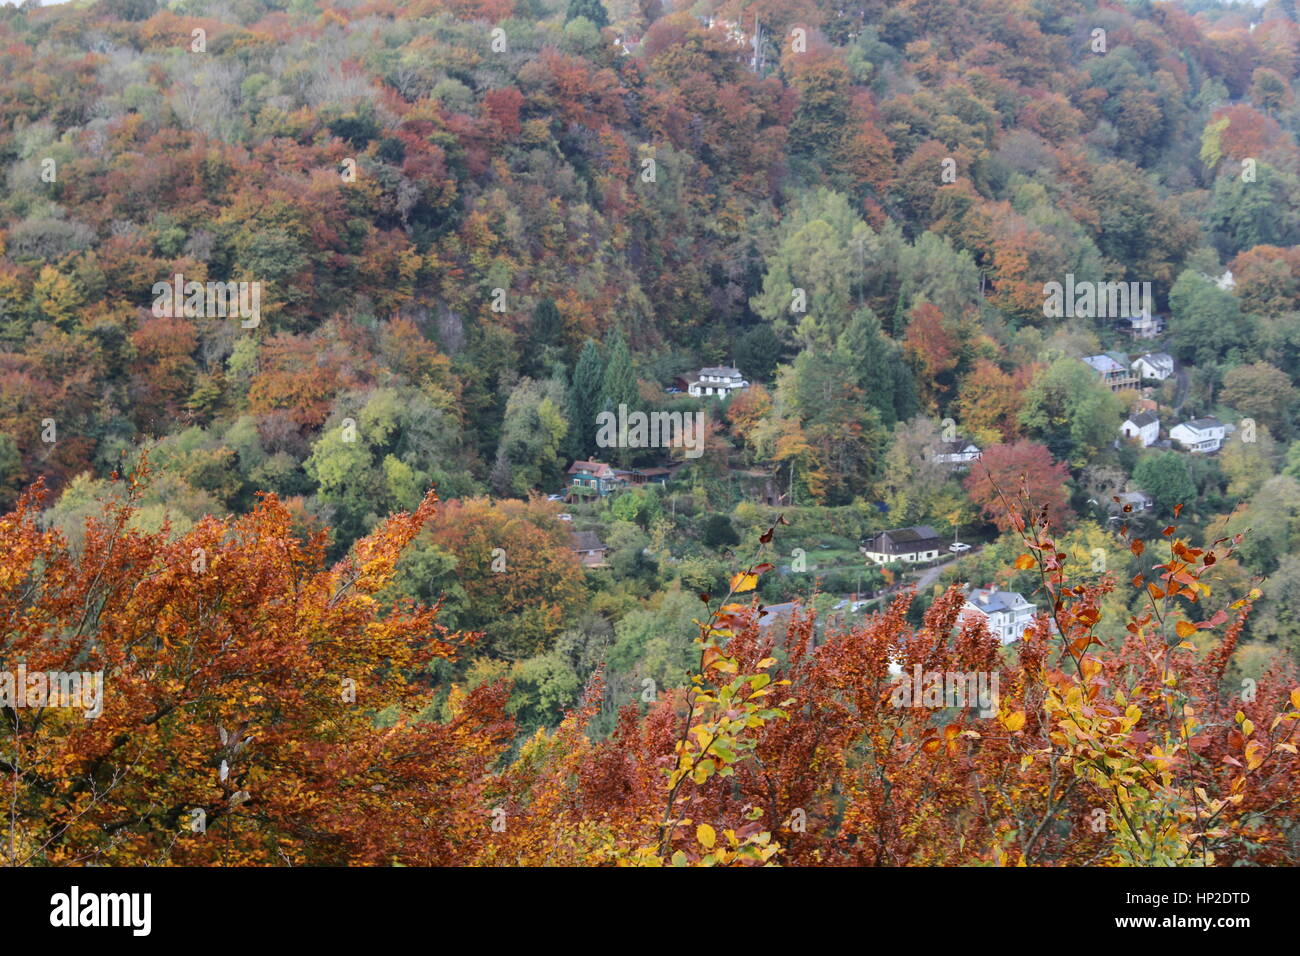 Autumn in Symonds Yat (West), Herefordshire, England. Taken from Symonds Yat Rock. - Stock Image